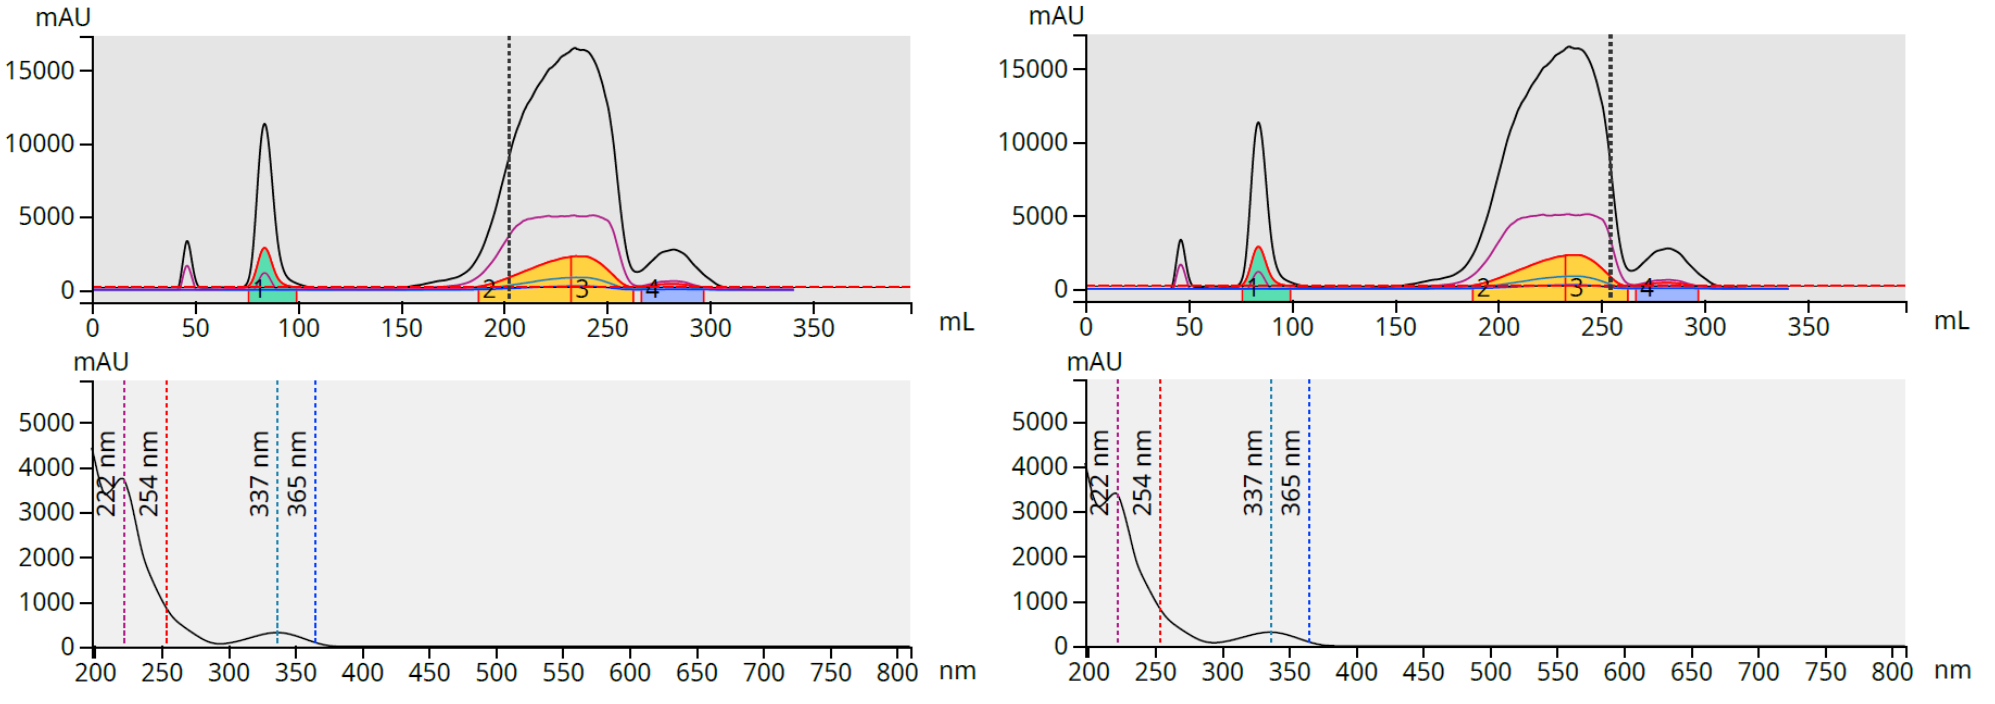 How can flash chromatography UV absorbance spectra be used to identify purified compounds?